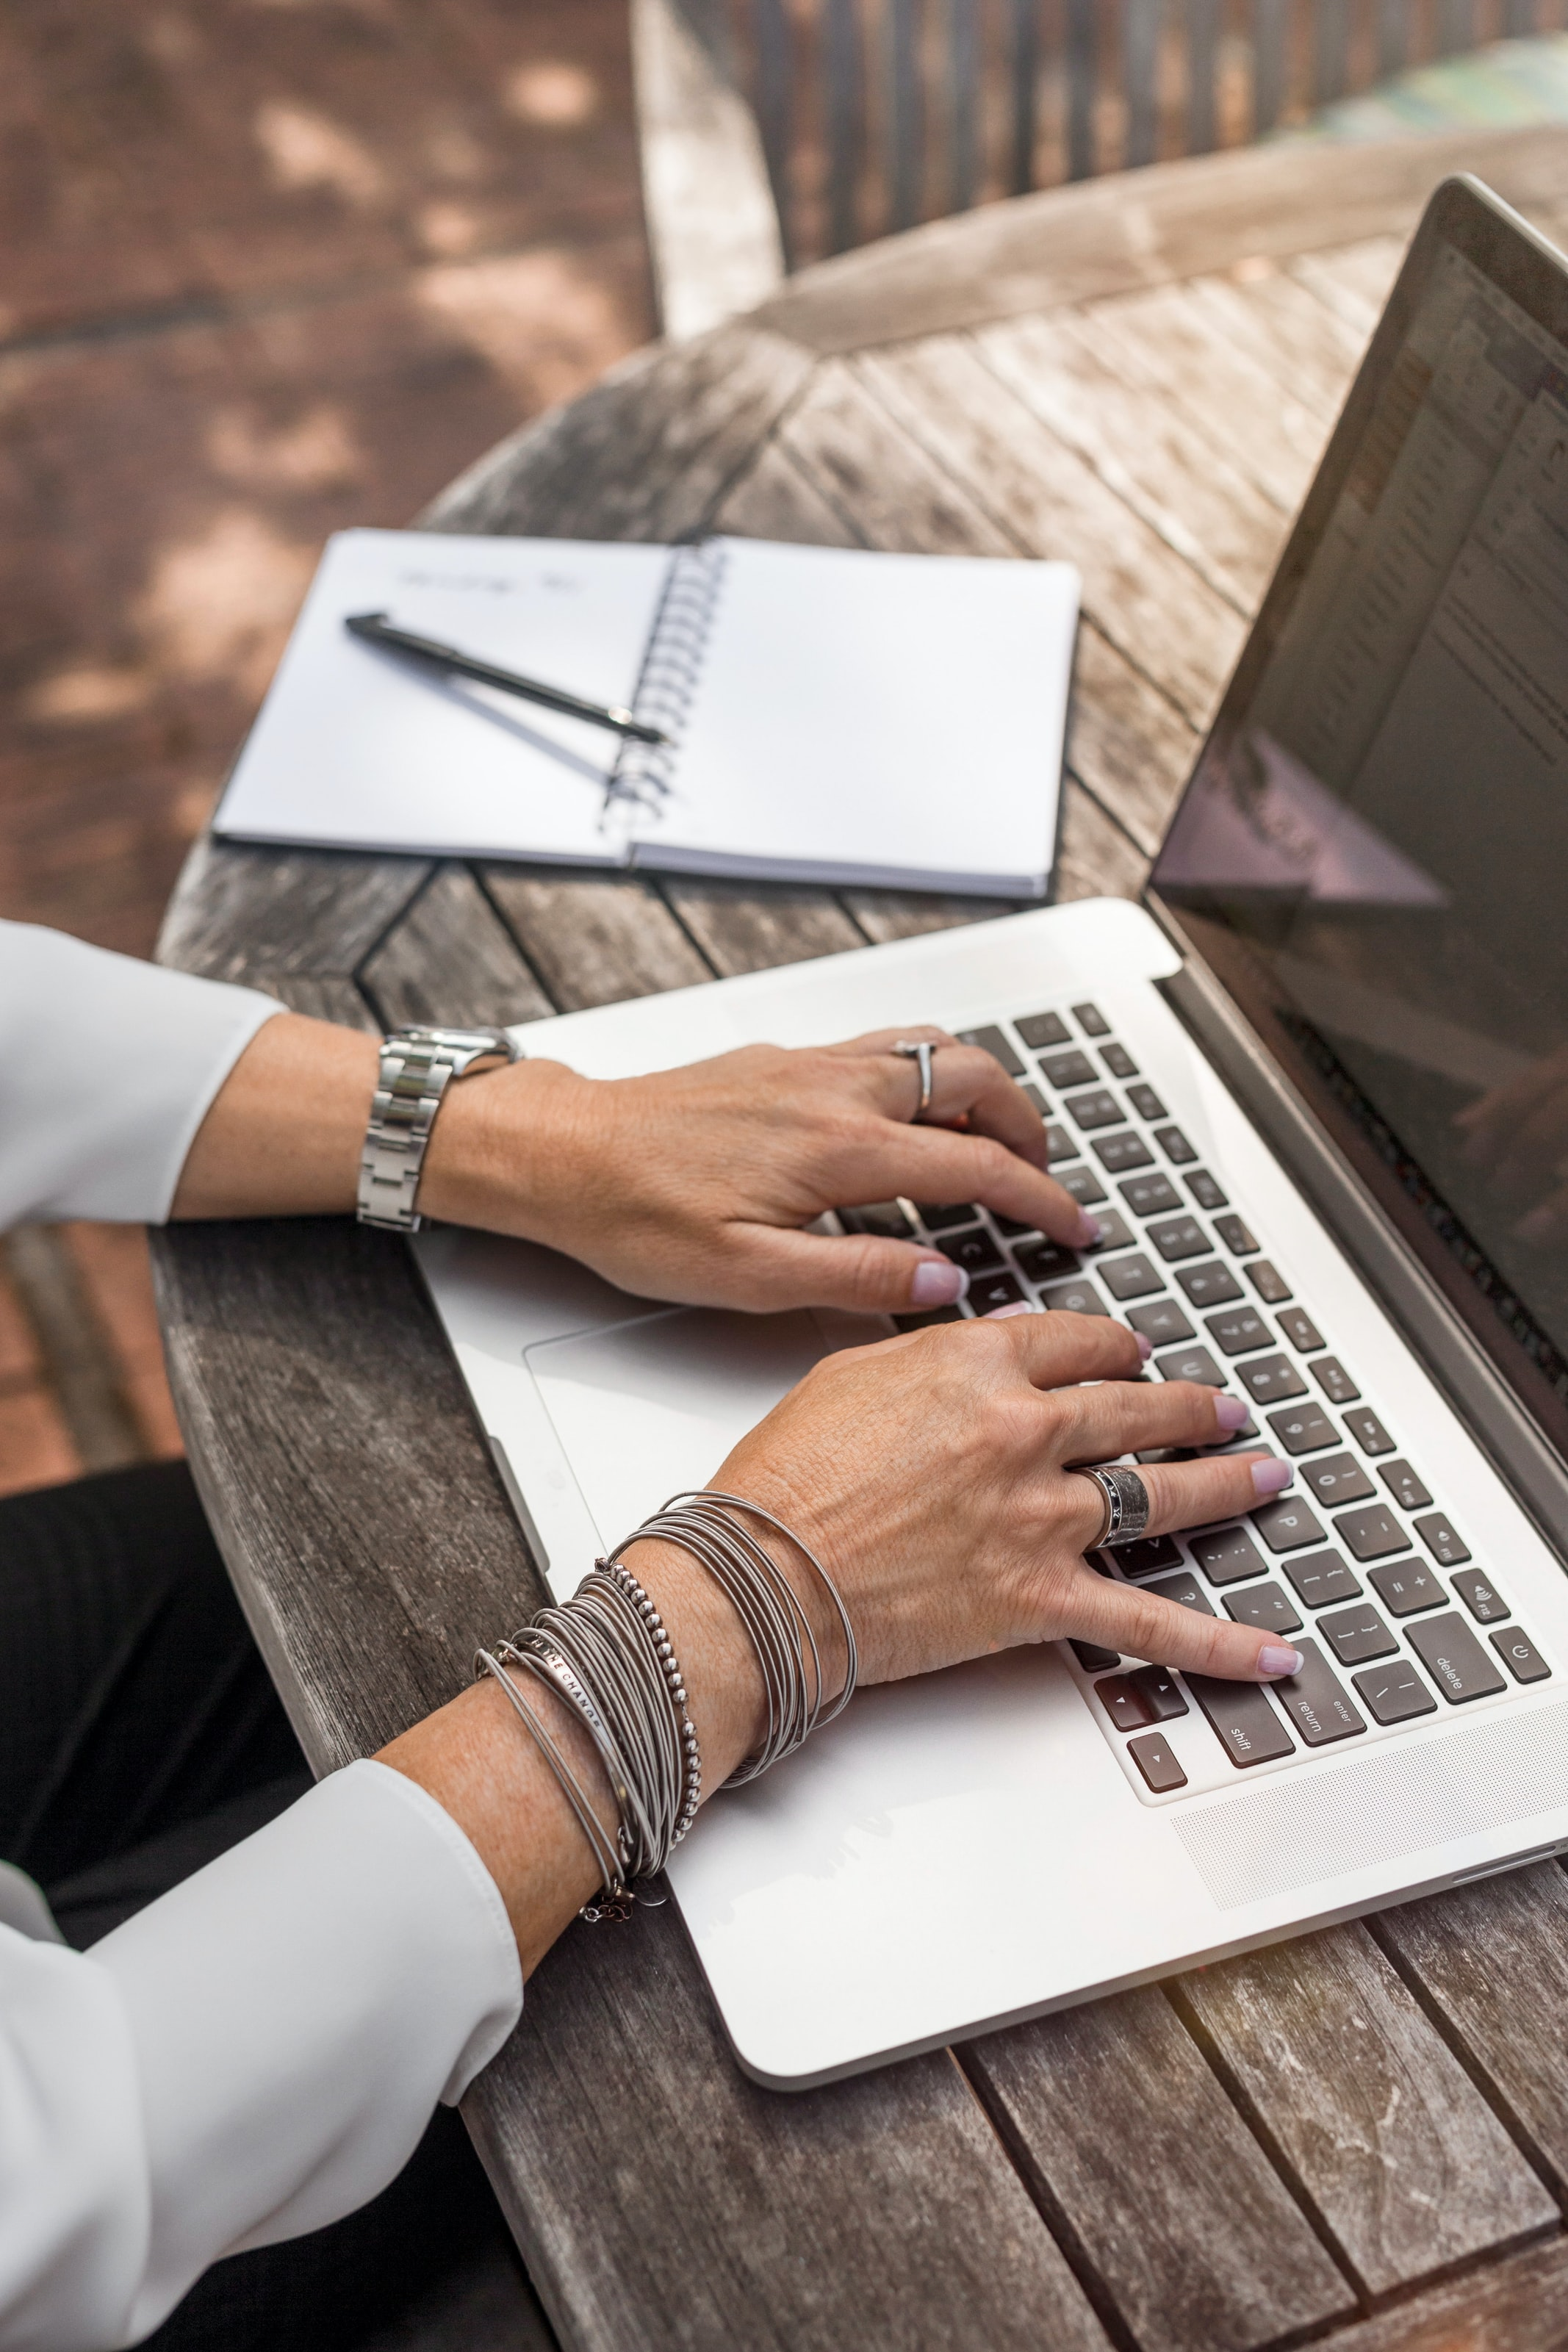 The hands of a person typing on a laptop with a notebook and a pen next to the laptop